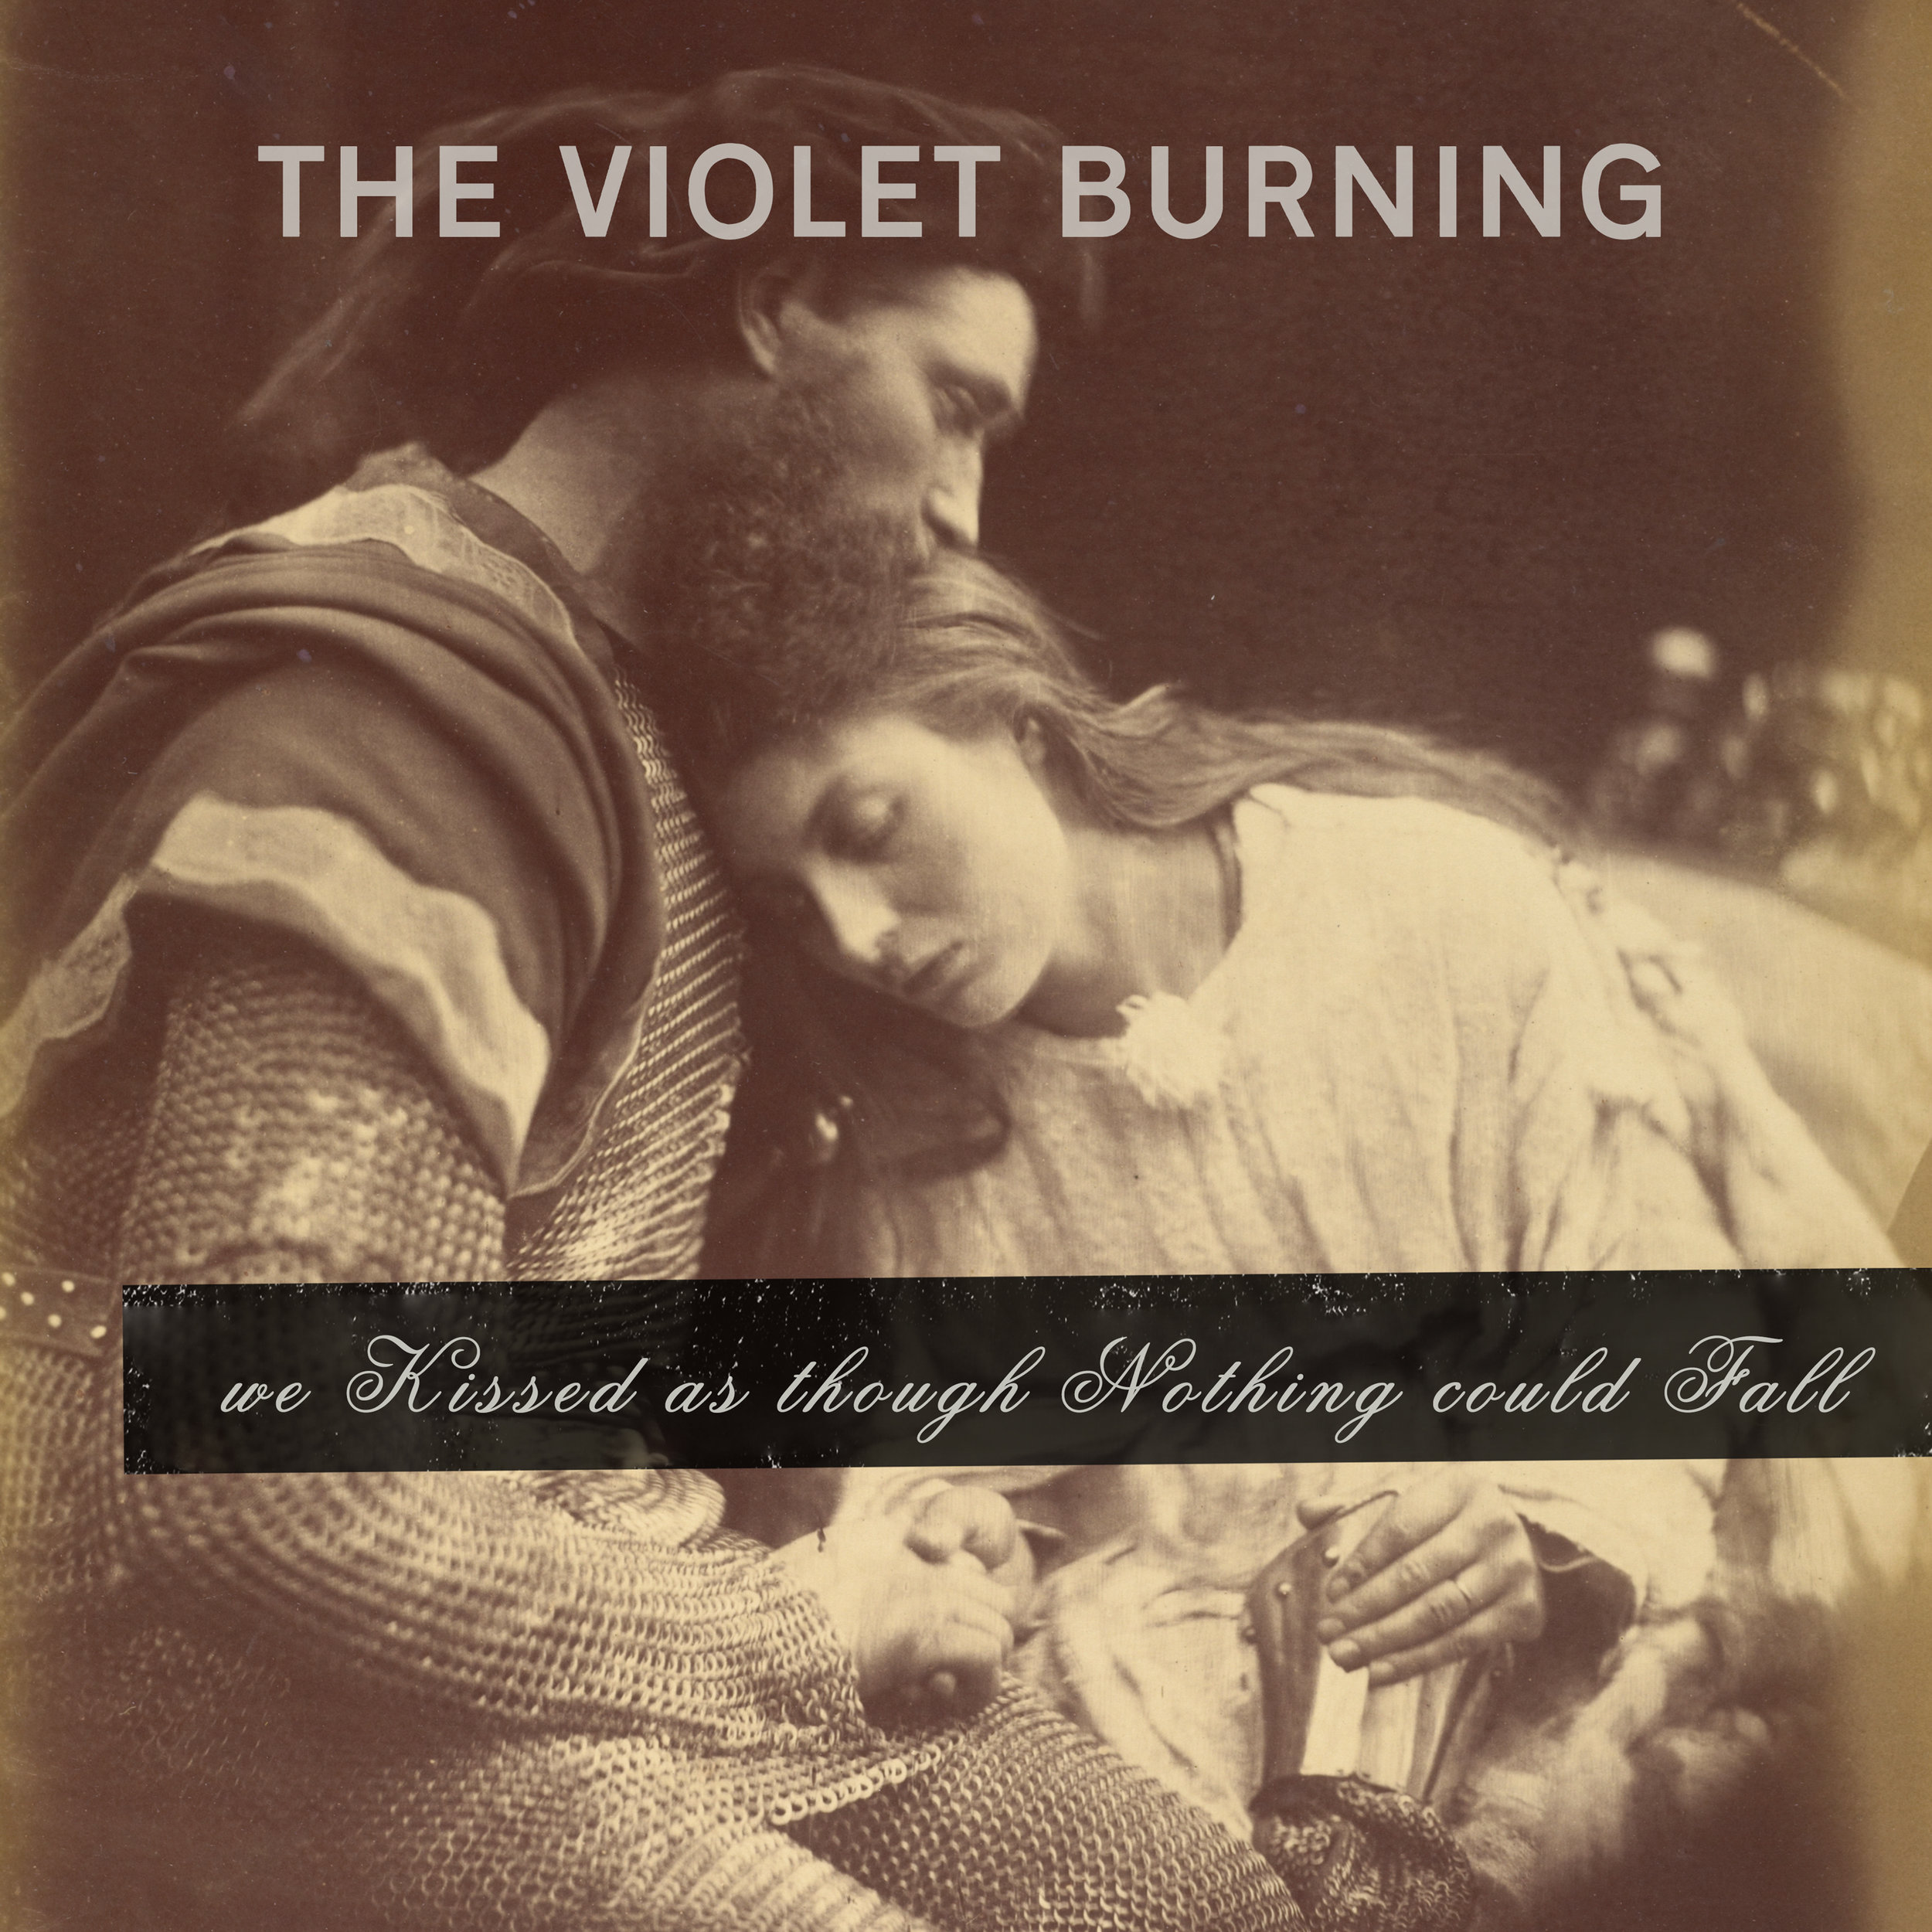 We kissed as though nothing could fall - the new EP from THE VIOLET BURNINGexclusively when you pre-order. Thanks for your support to help us complete this new music.